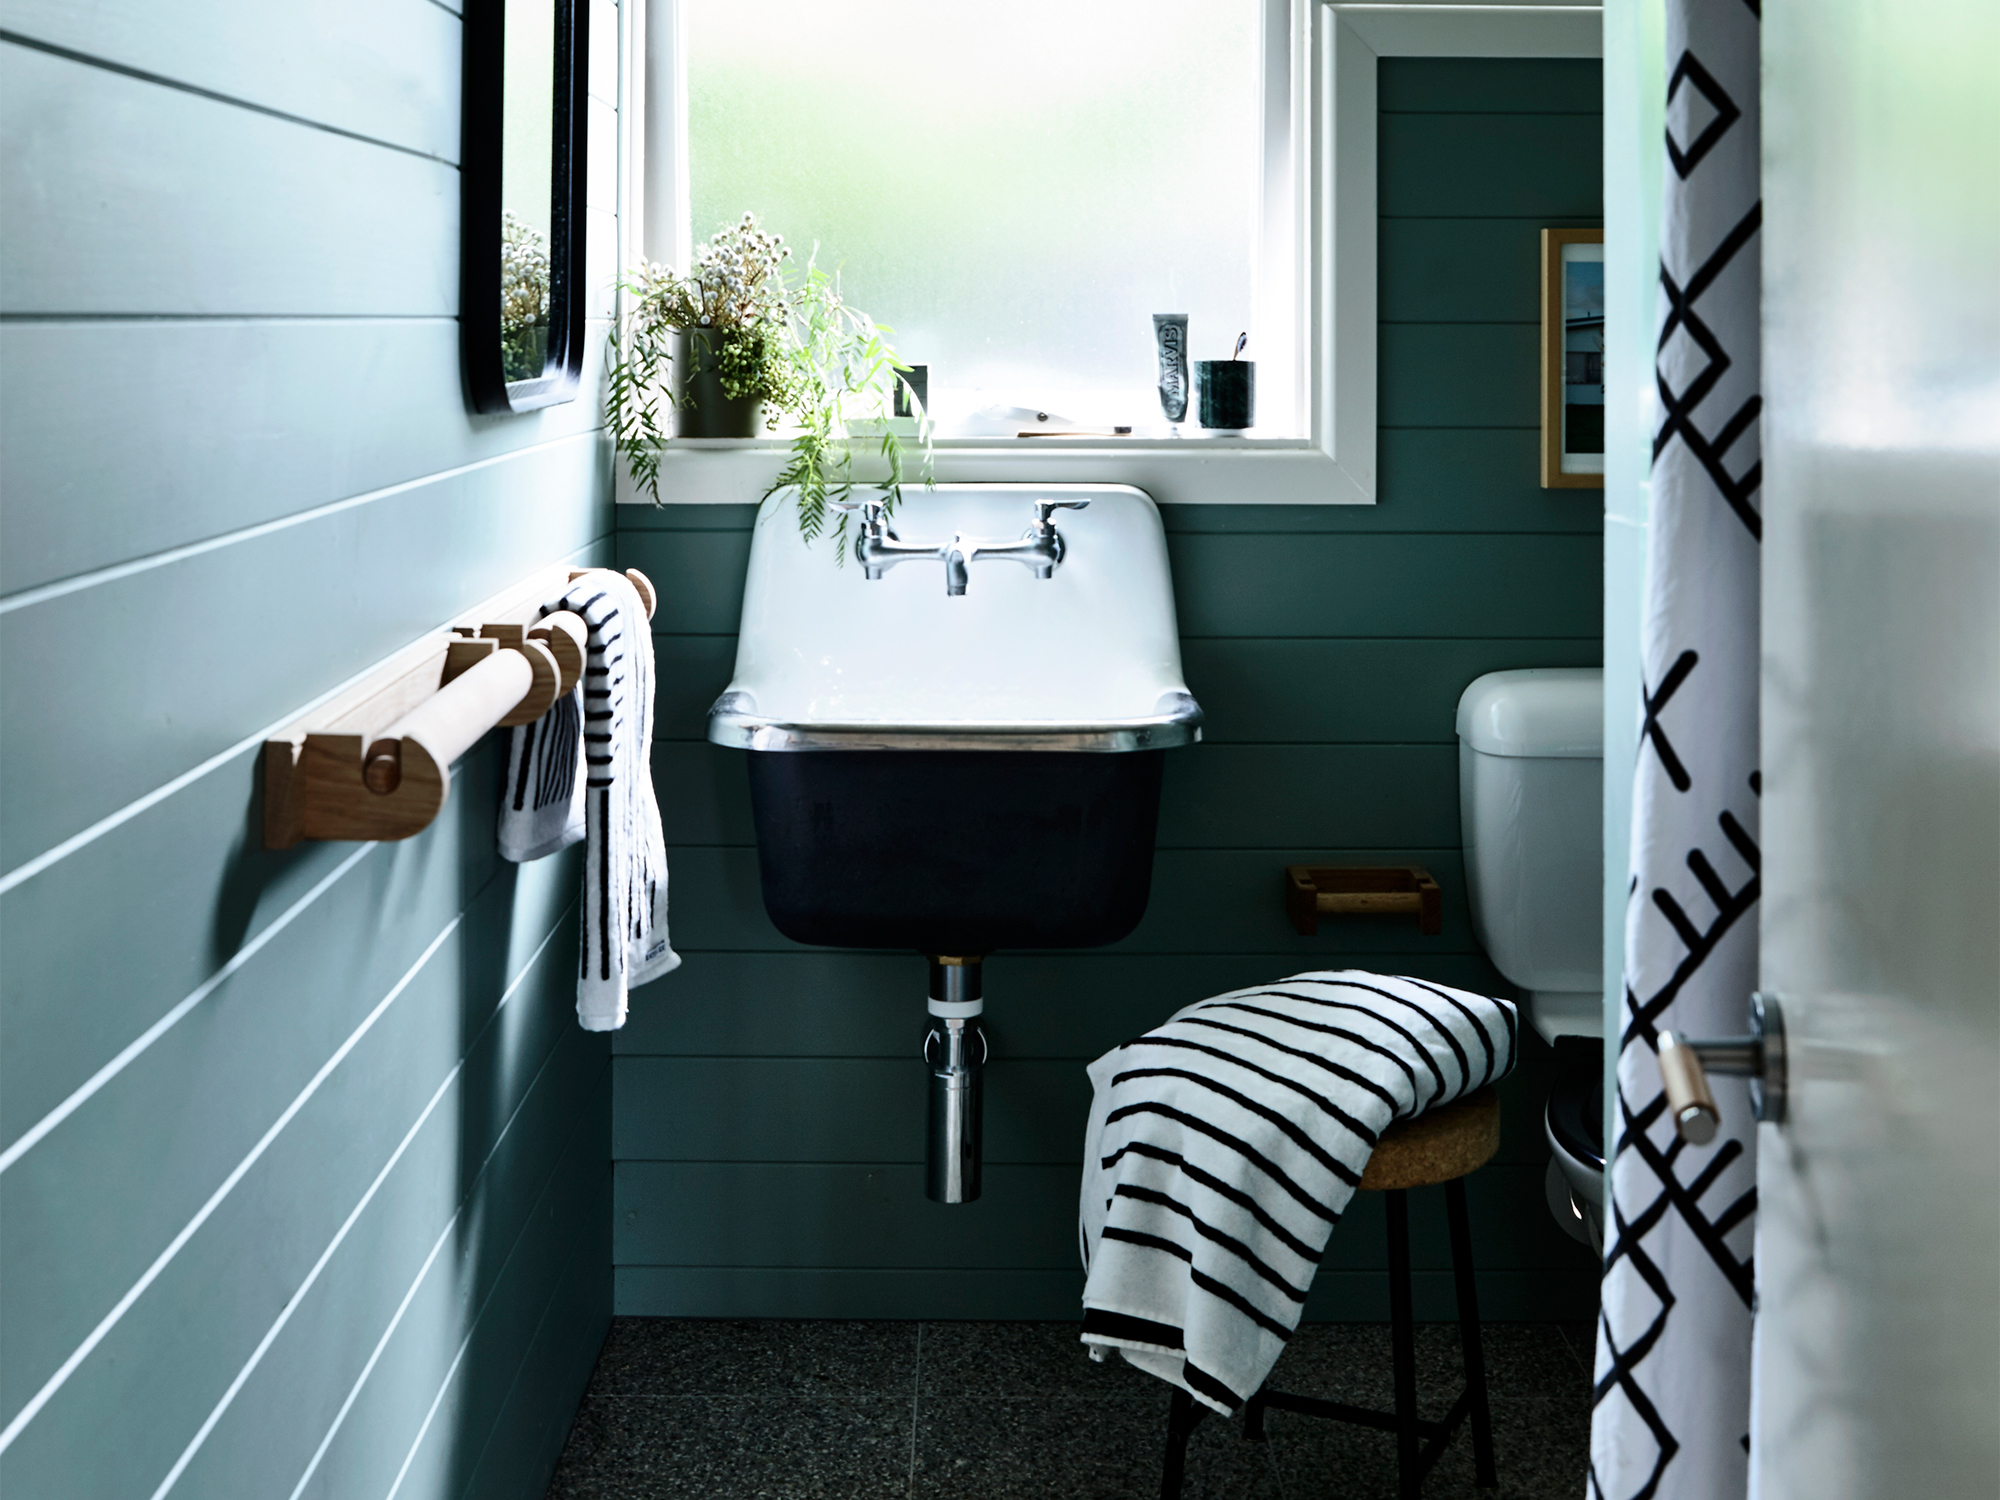 Bathroom Paints How To Repaint A Bathroom Ceiling Like A Pro Realestate Au